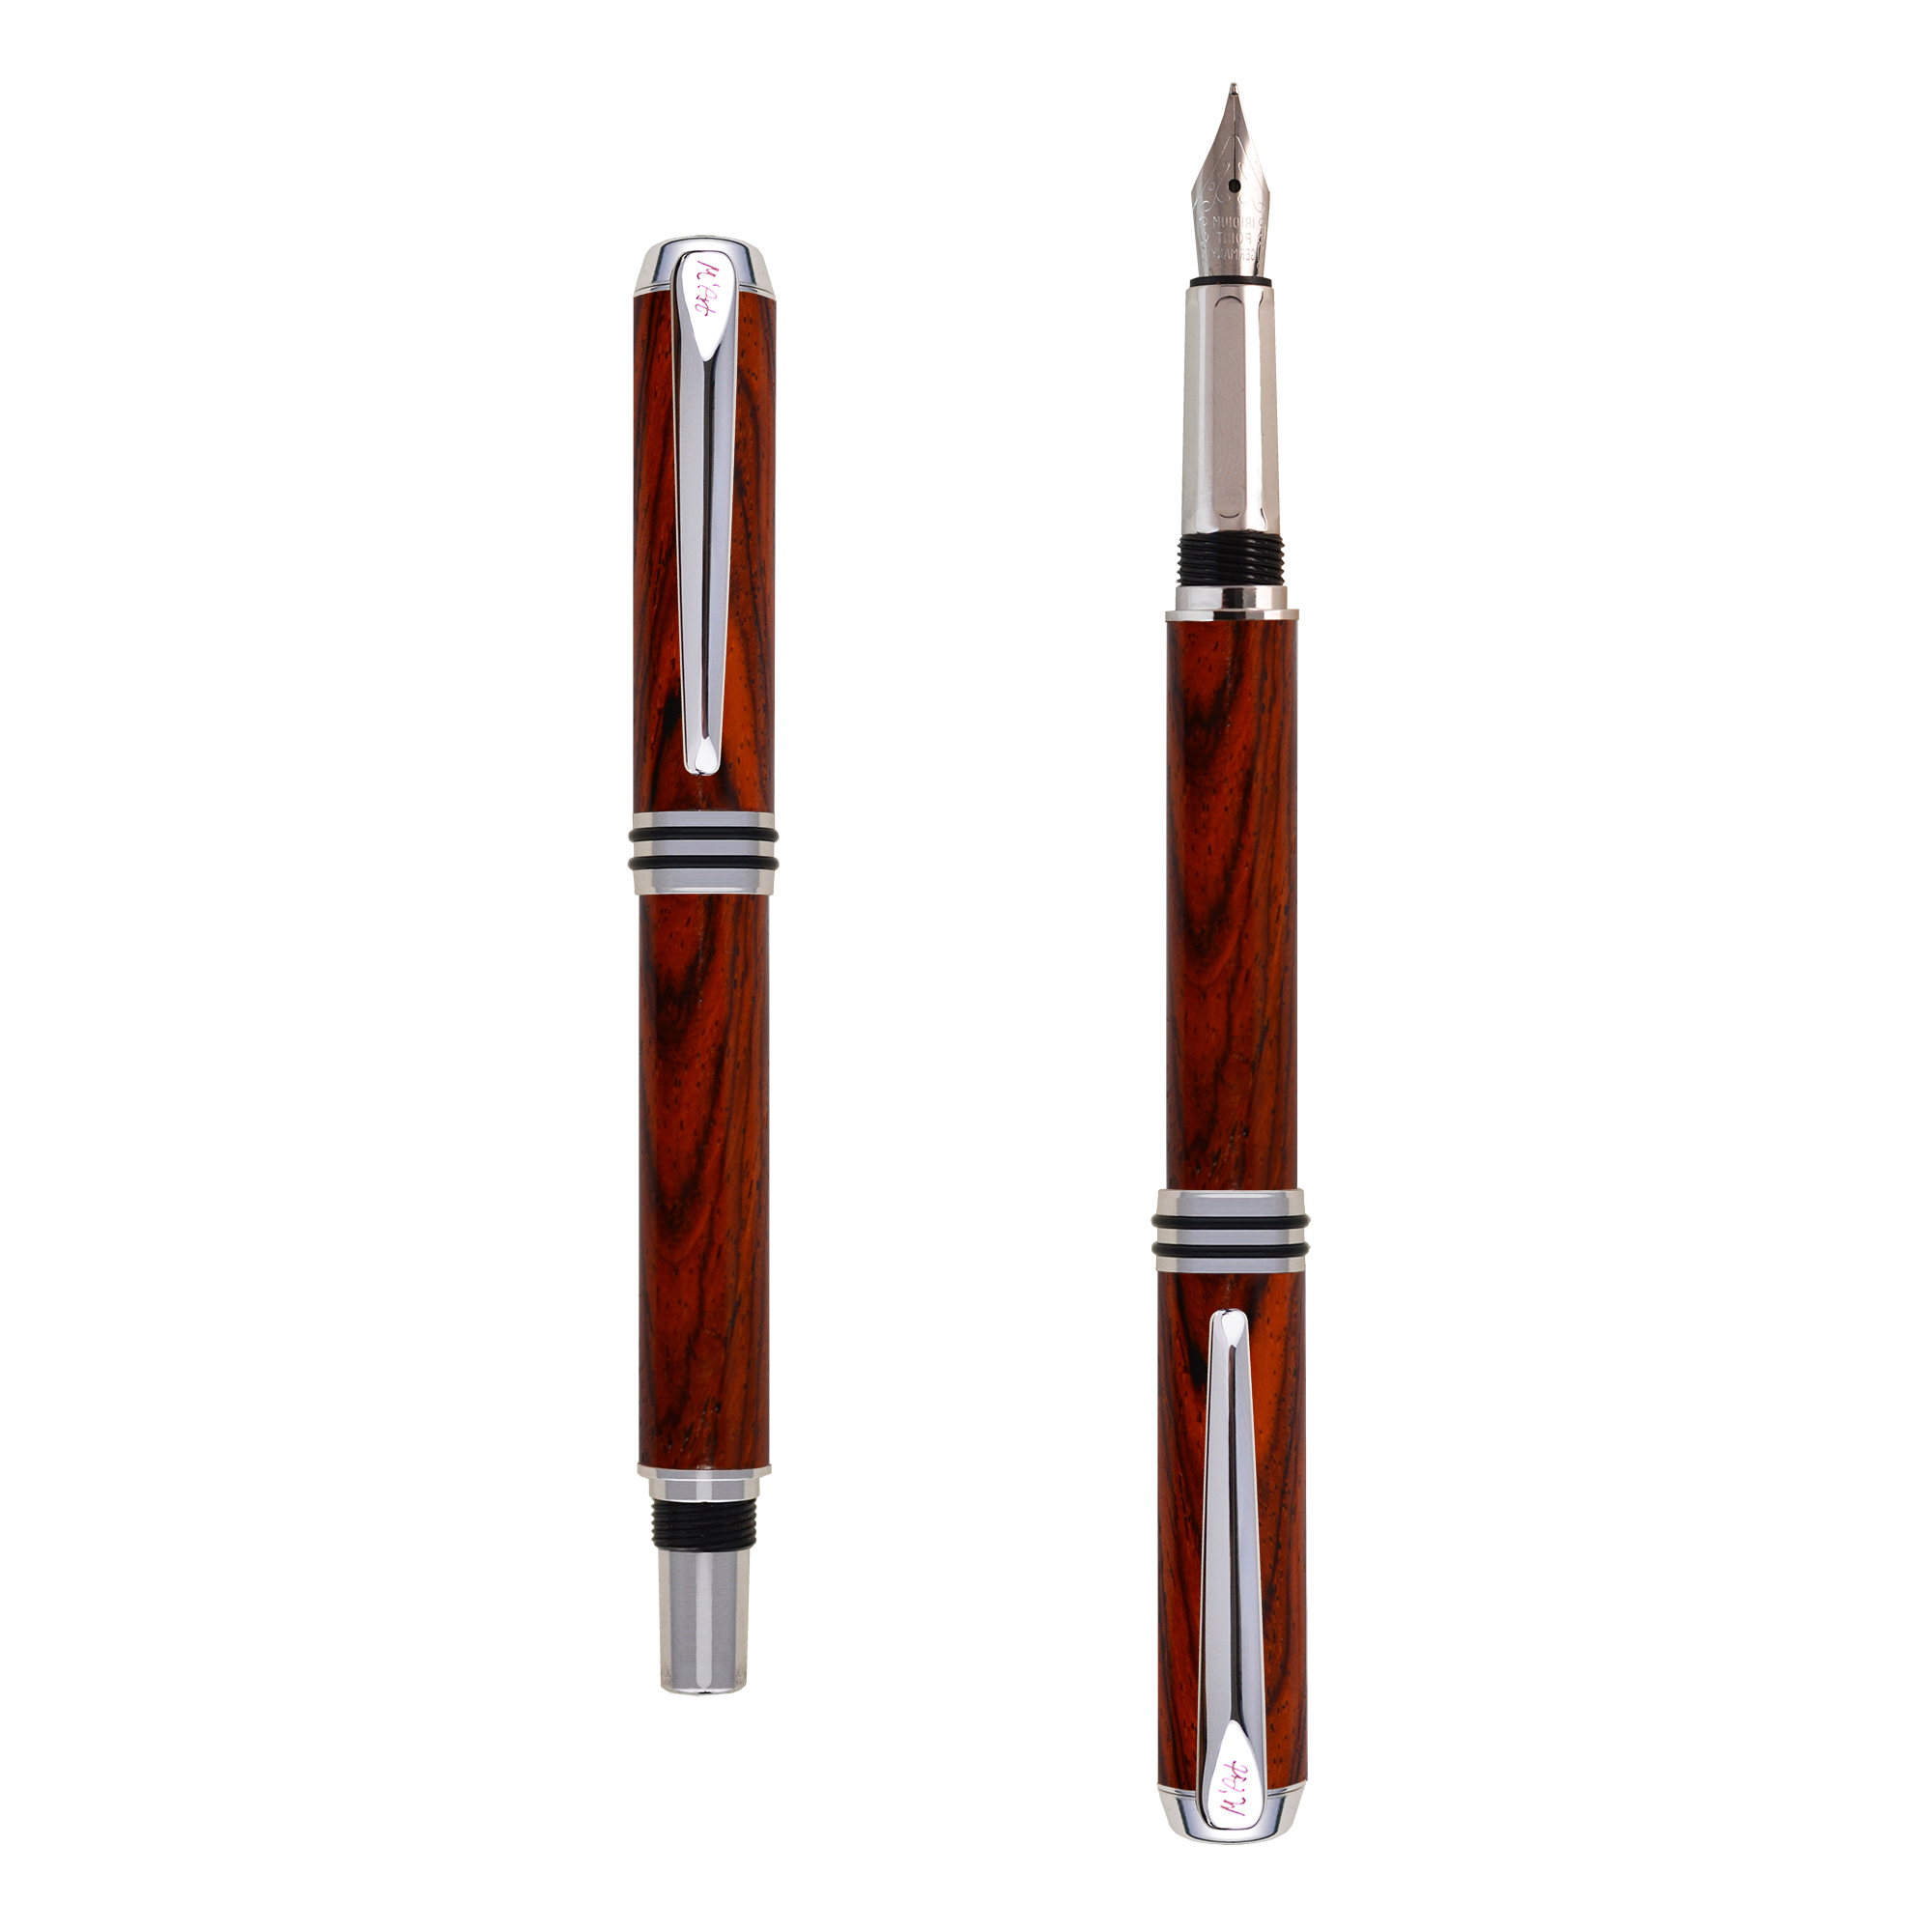 Antea fountain pen Cocobolo wood